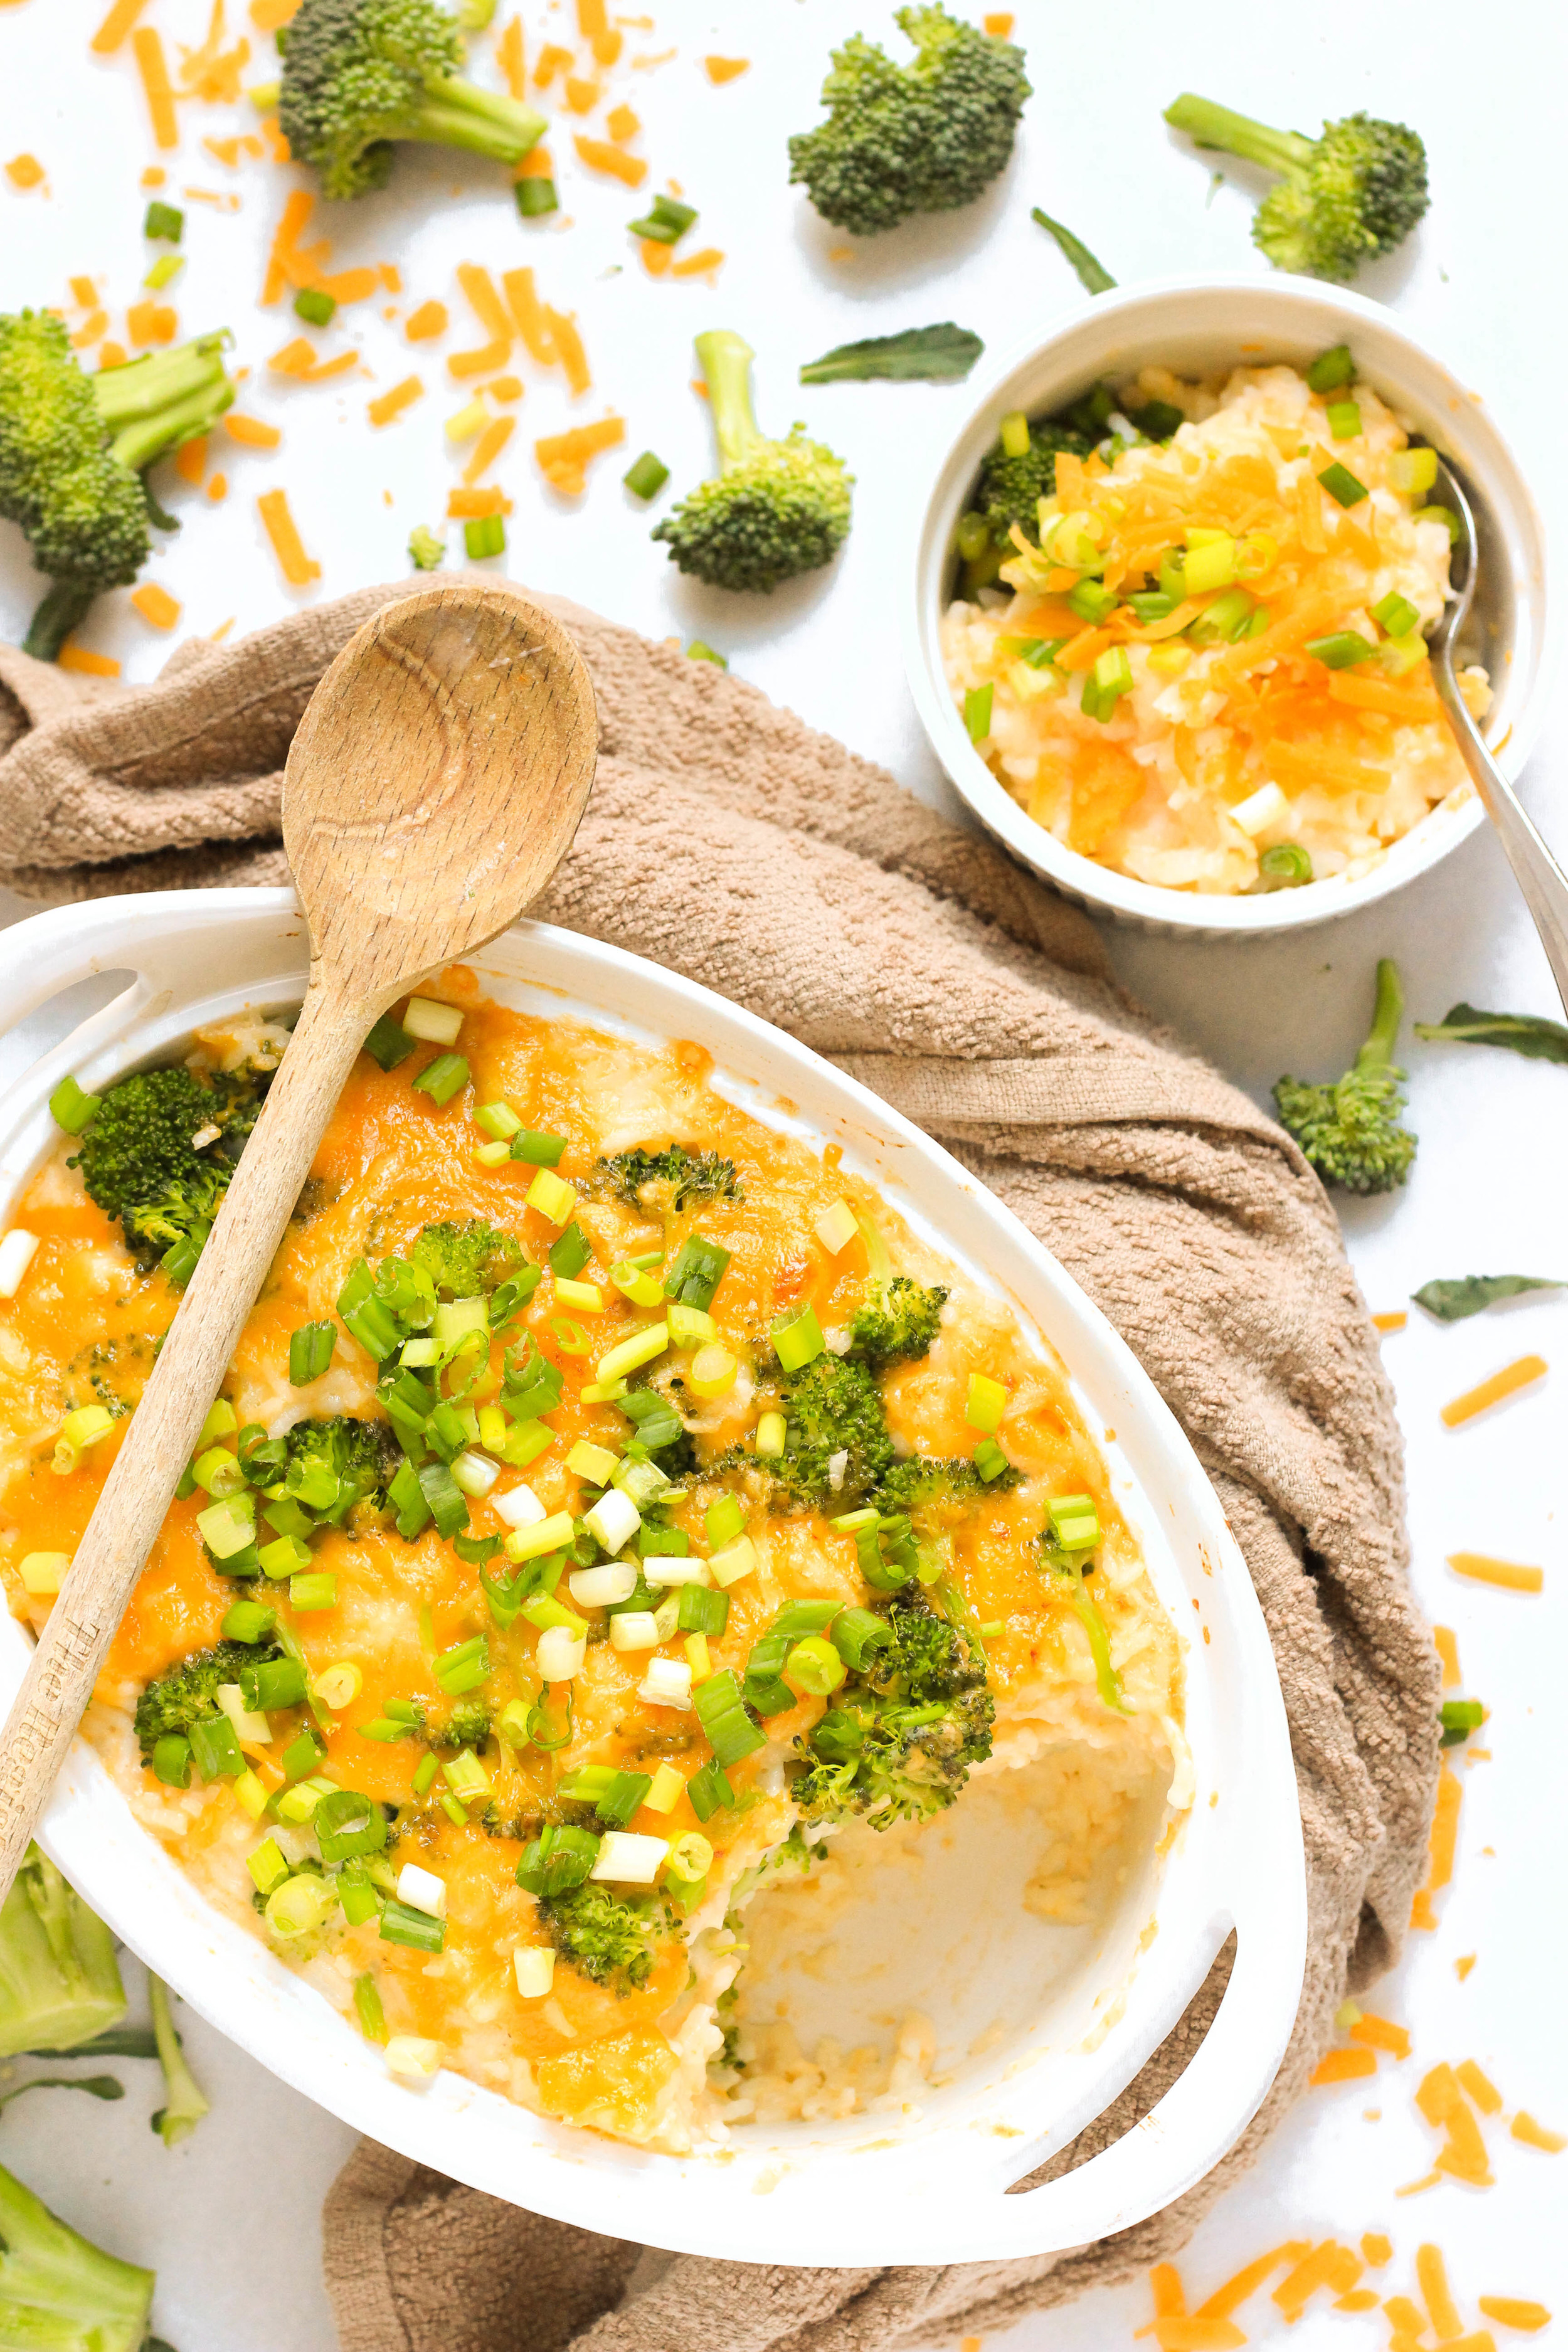 Broccoli, Cheddar and Rice Casserole8.jpg